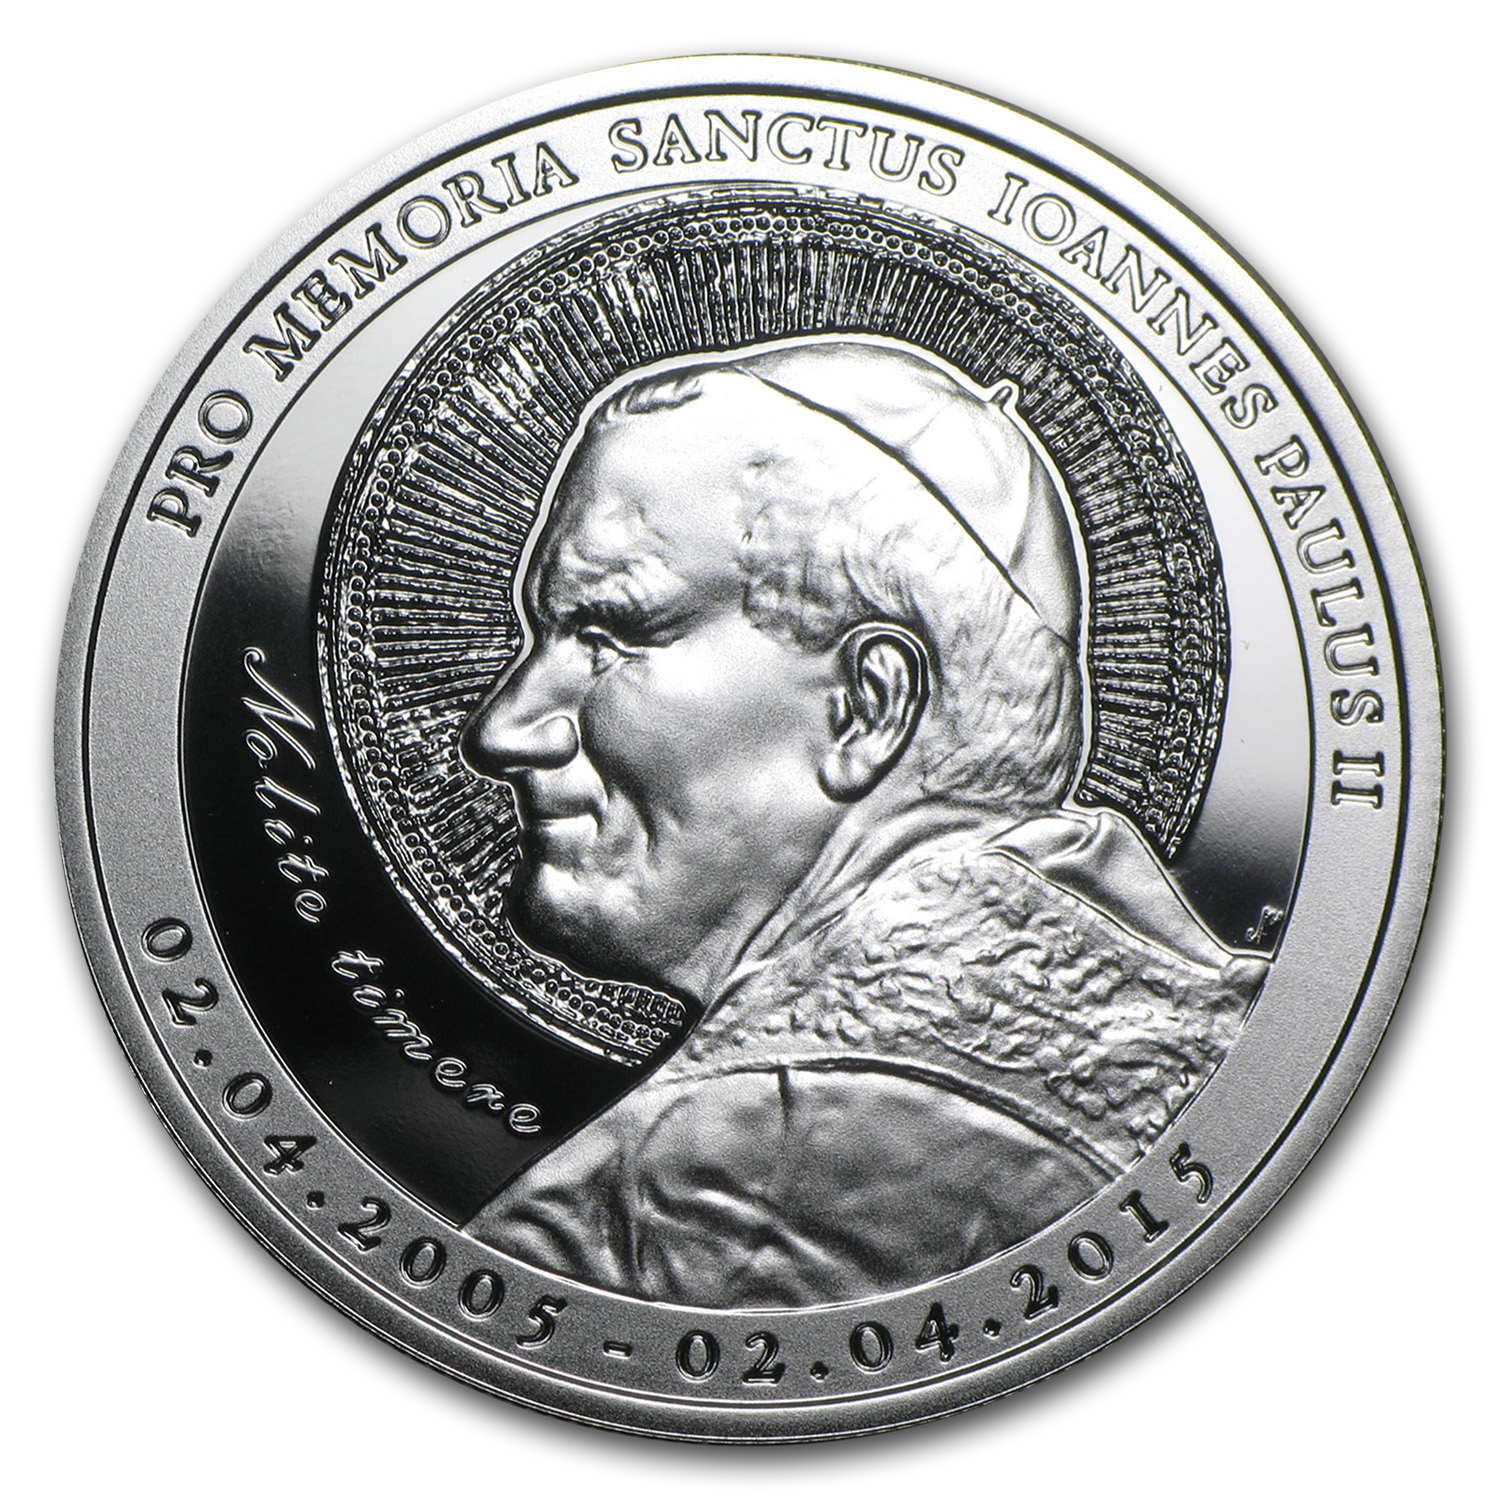 2015 Niue 1 oz Silver Pro Memoria Pope John Paul II Proof